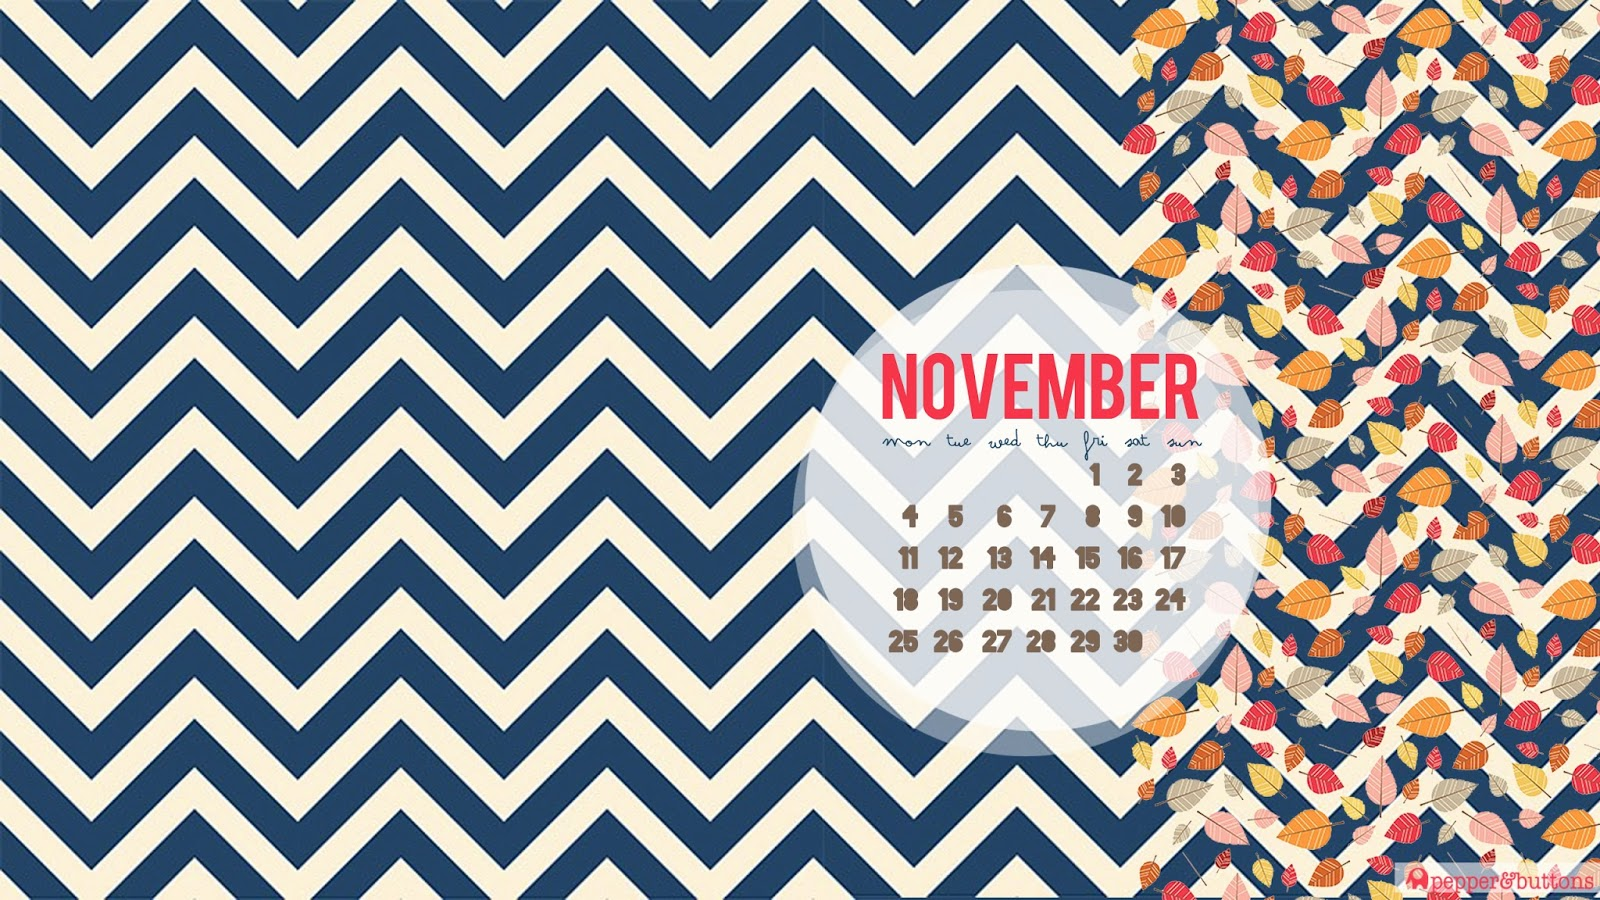 Free Desktop Calendar Wallpaper November : Pepper and buttons november free desktop calendar